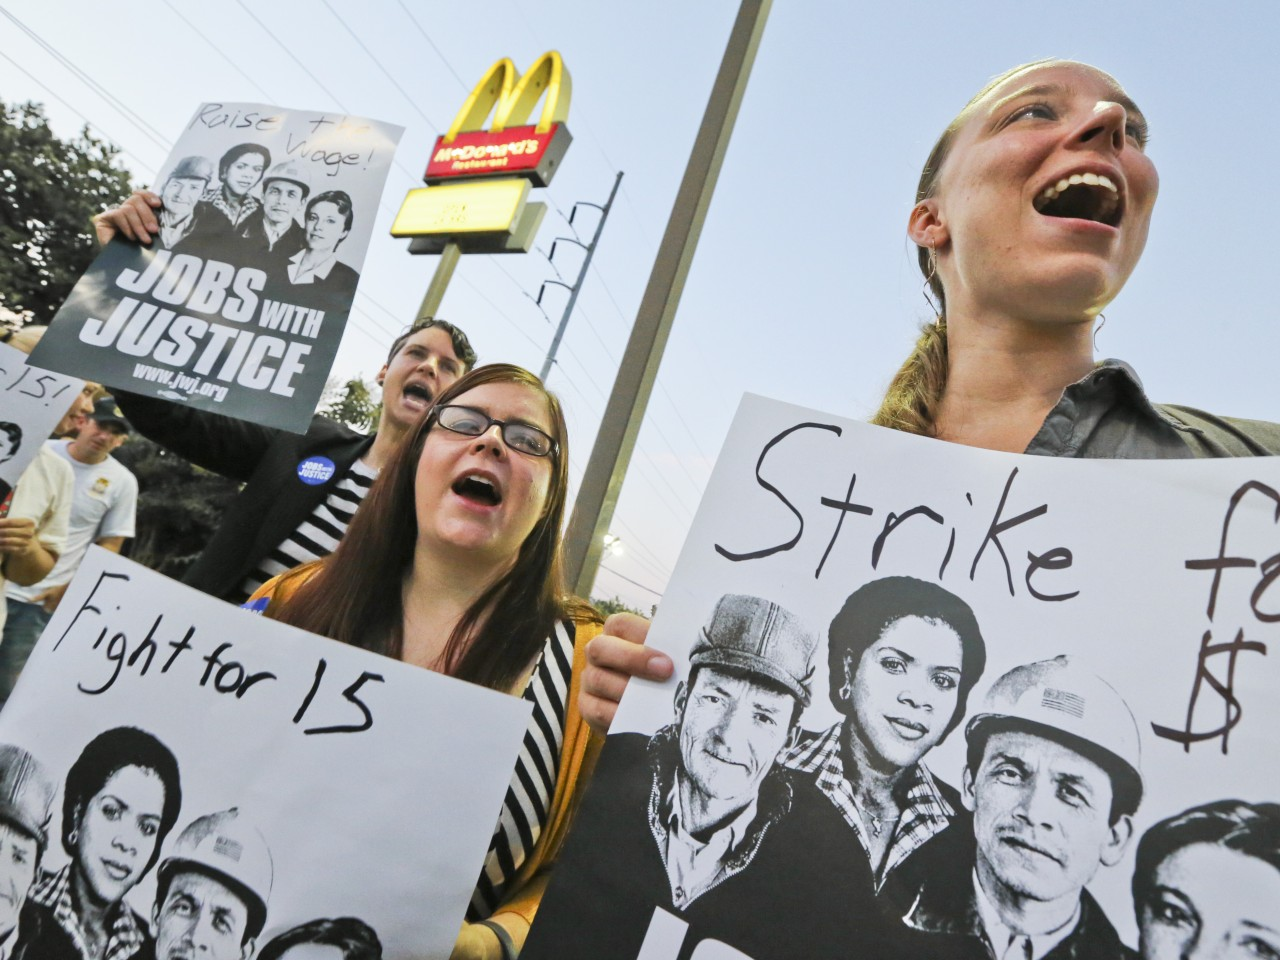 fast-food-workers-pay.jpeg1-1280x960